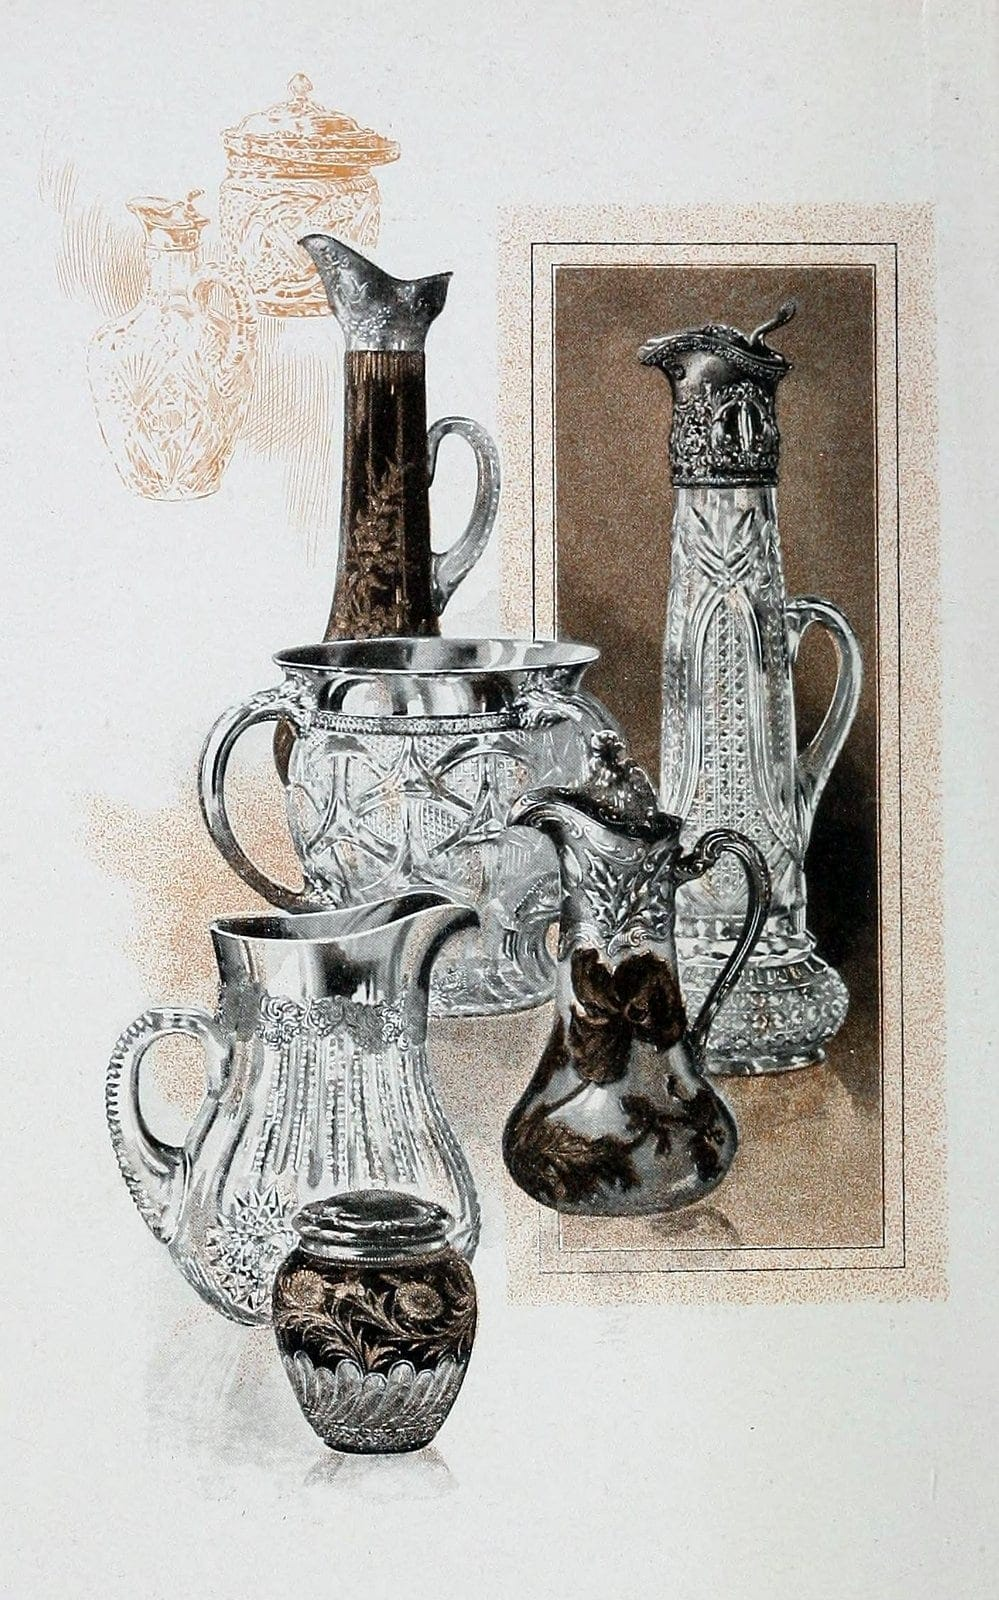 Mounted Glassware